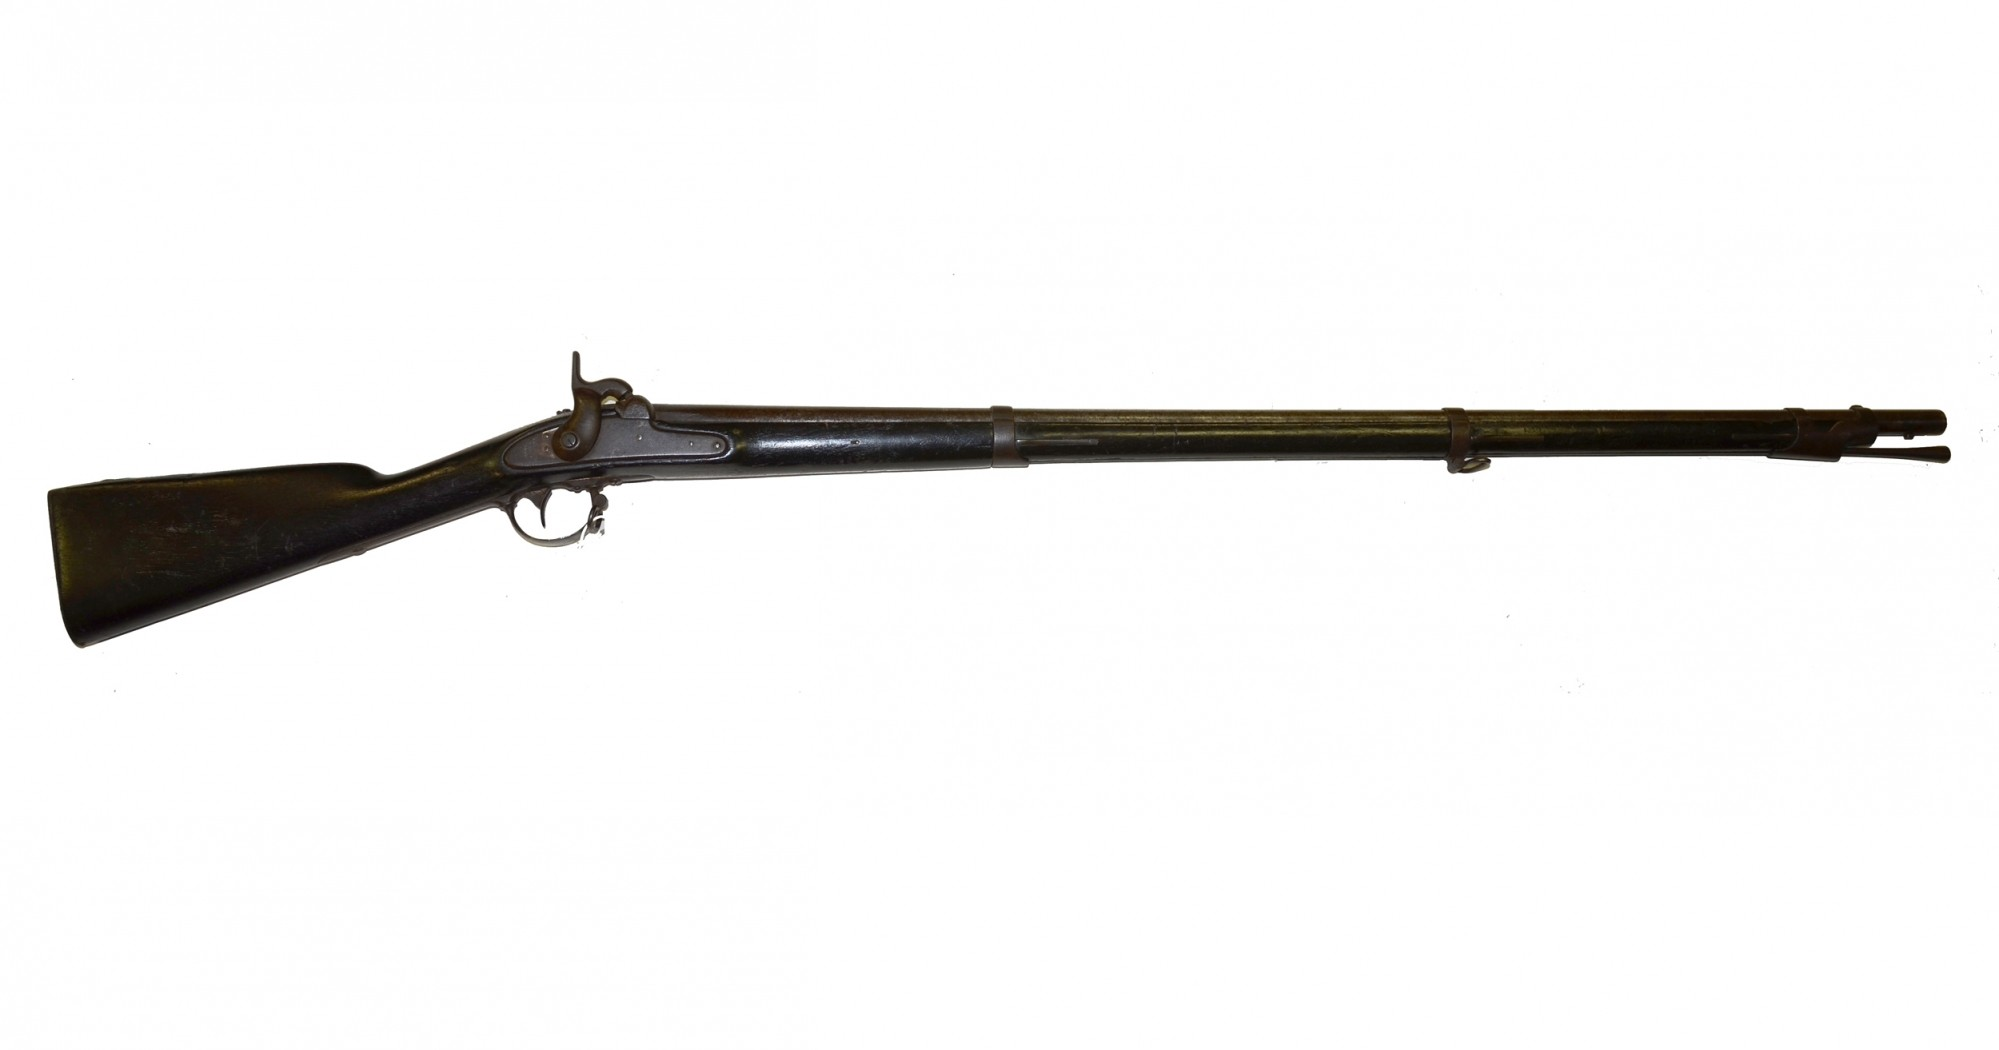 HARPERS FERRY M1842 SMOOTHBORE MUSKET, DATED 1846